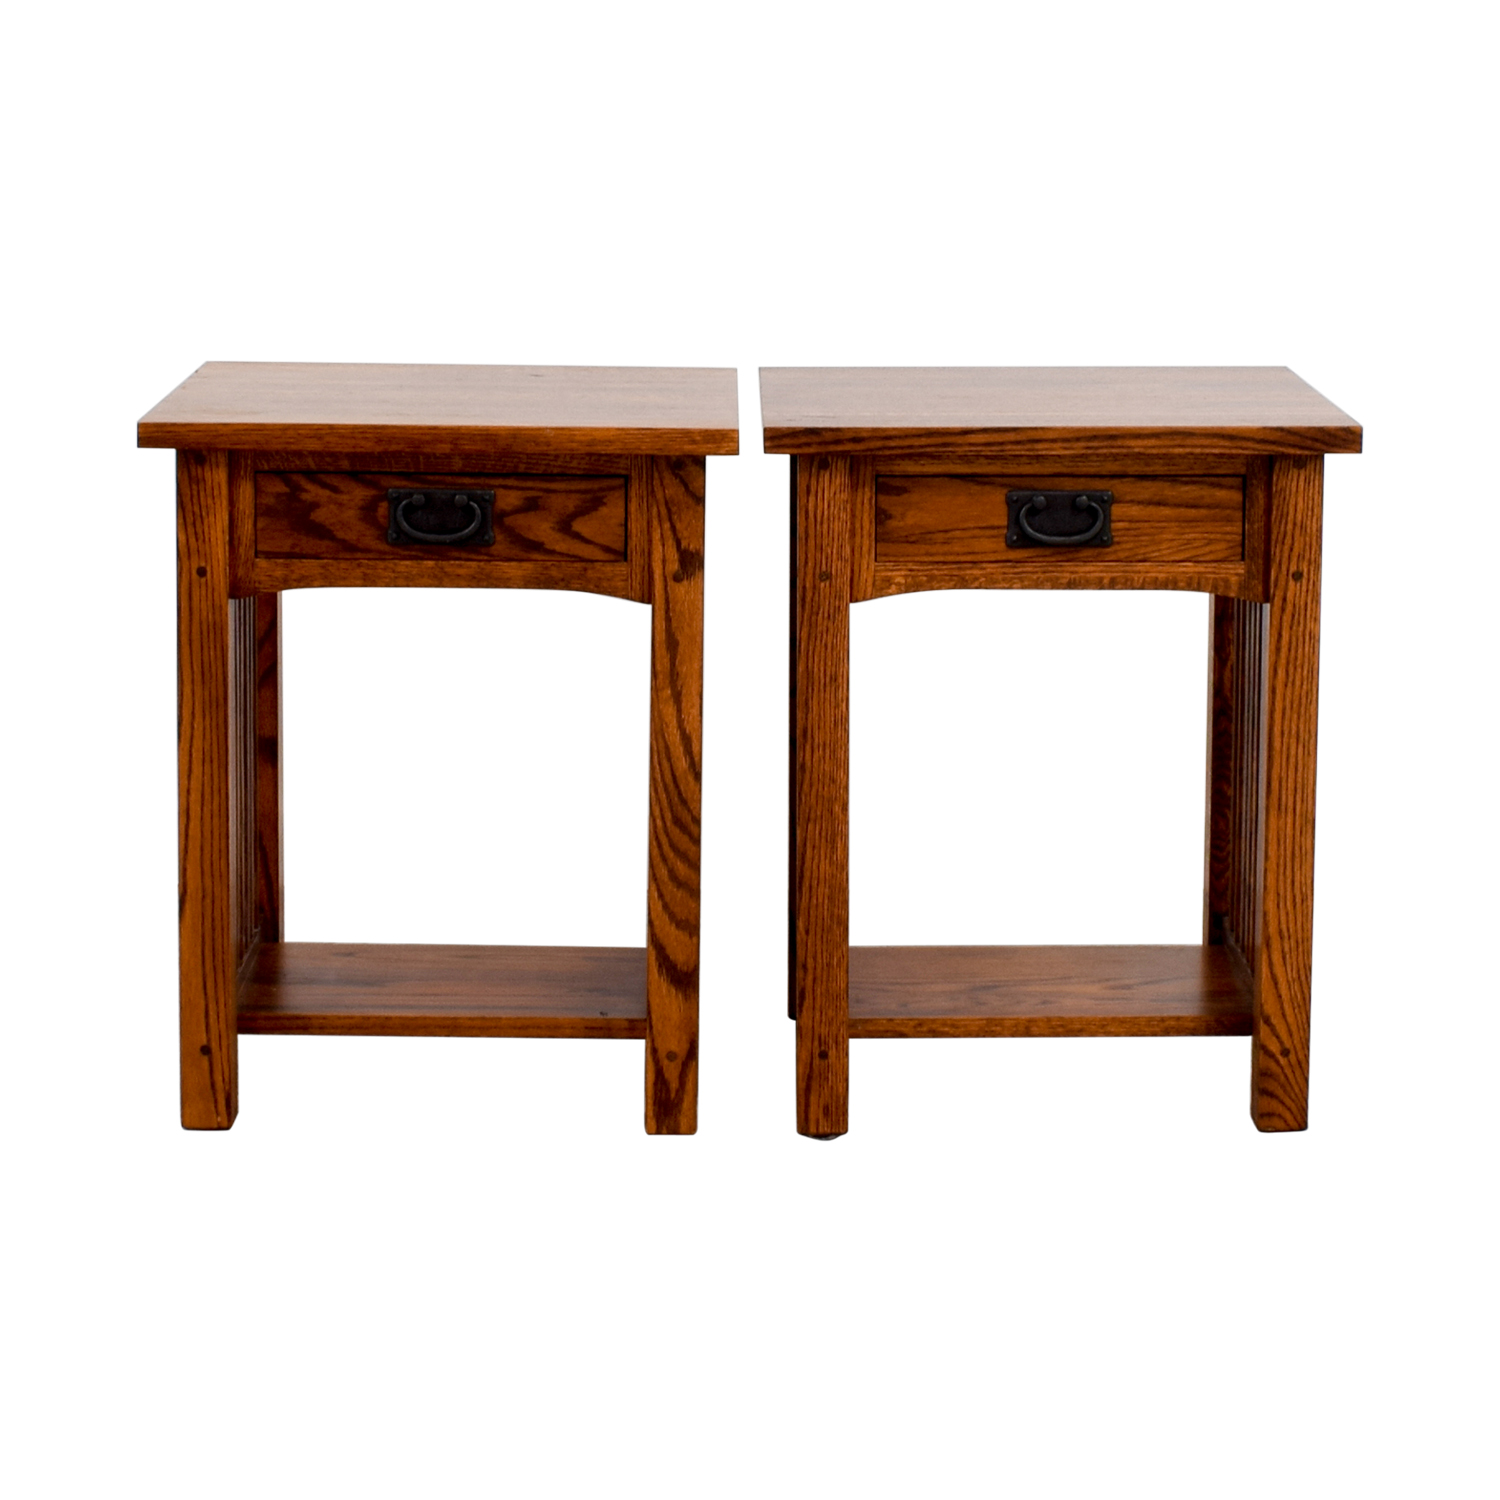 Michaels Mission Nightstand in Oak / Tables